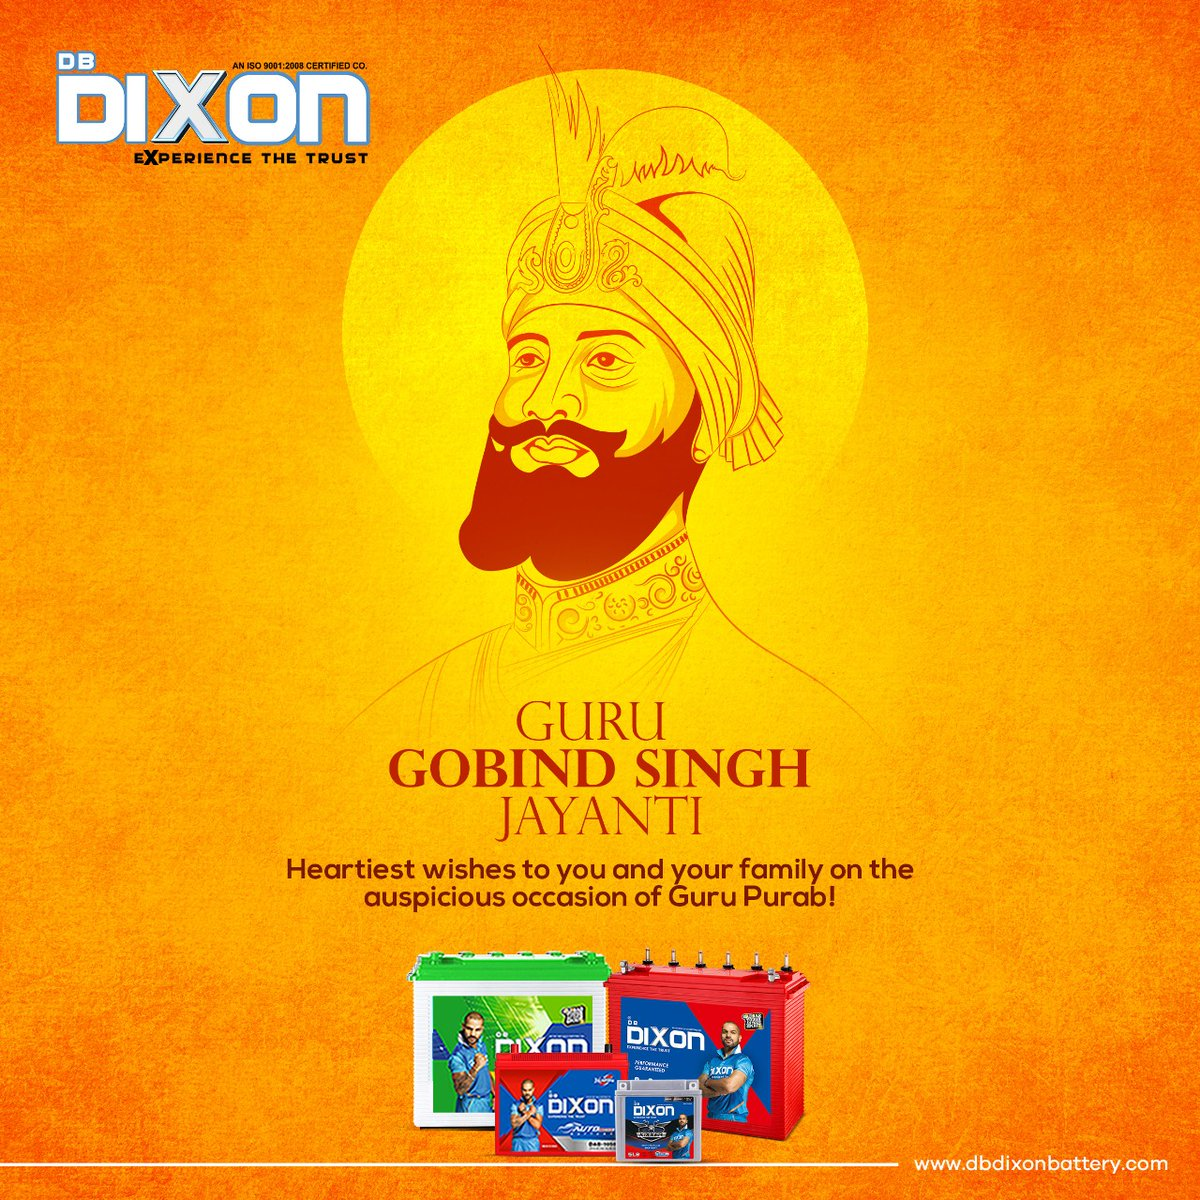 On this pious occasion of Guru Gobind Singh Jayanti let us imbibe the teachings of the Guru and grow in compassion and love. Visit us: https://t.co/5YH90RPVBM Call us: 9110794134 #DBDixonBattery  #ExperienceTheTrust #TubularBatteries #gurupurab #GuruNanakJayanti #gurunanakdevji https://t.co/jbns17Ltm3